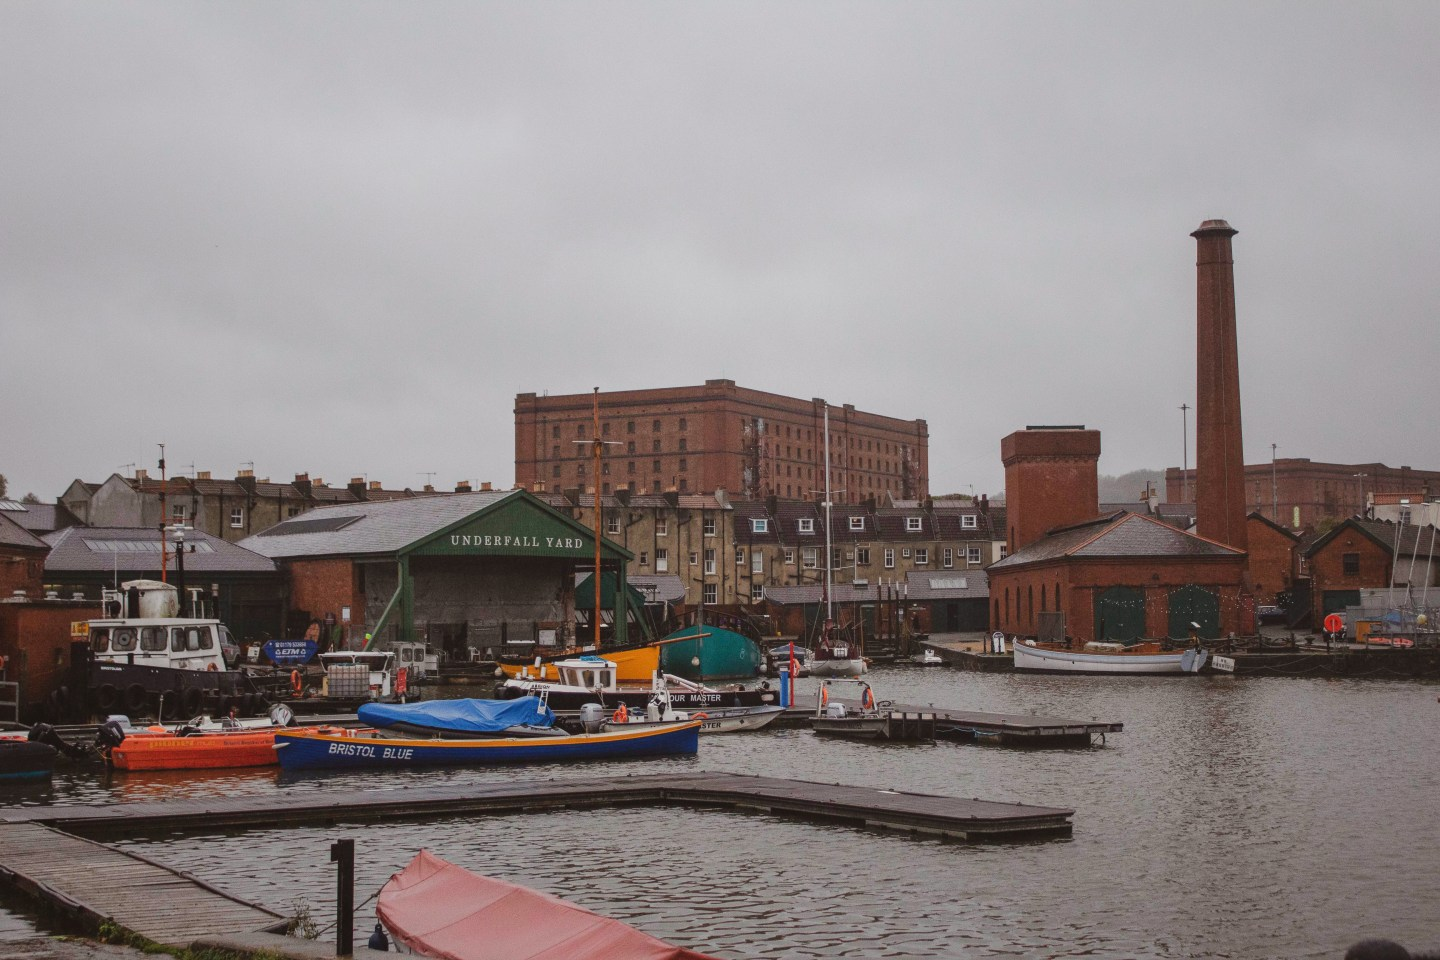 Underfell Yard in Bristol harbourside with boats and grey skies